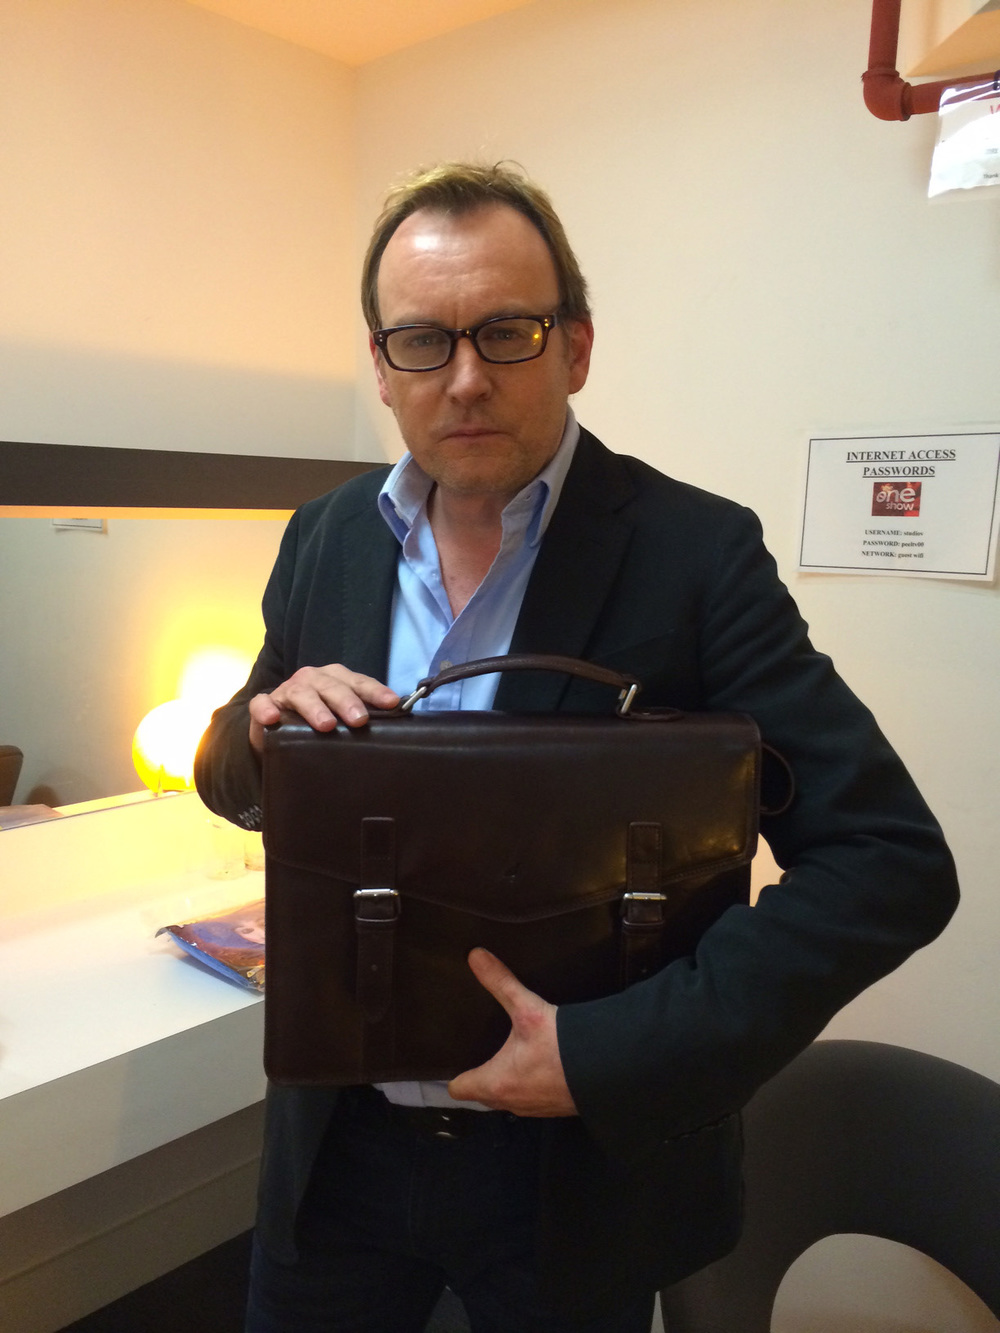 Philip Glenister sporting his Maple briefcase in the one show dressing room.